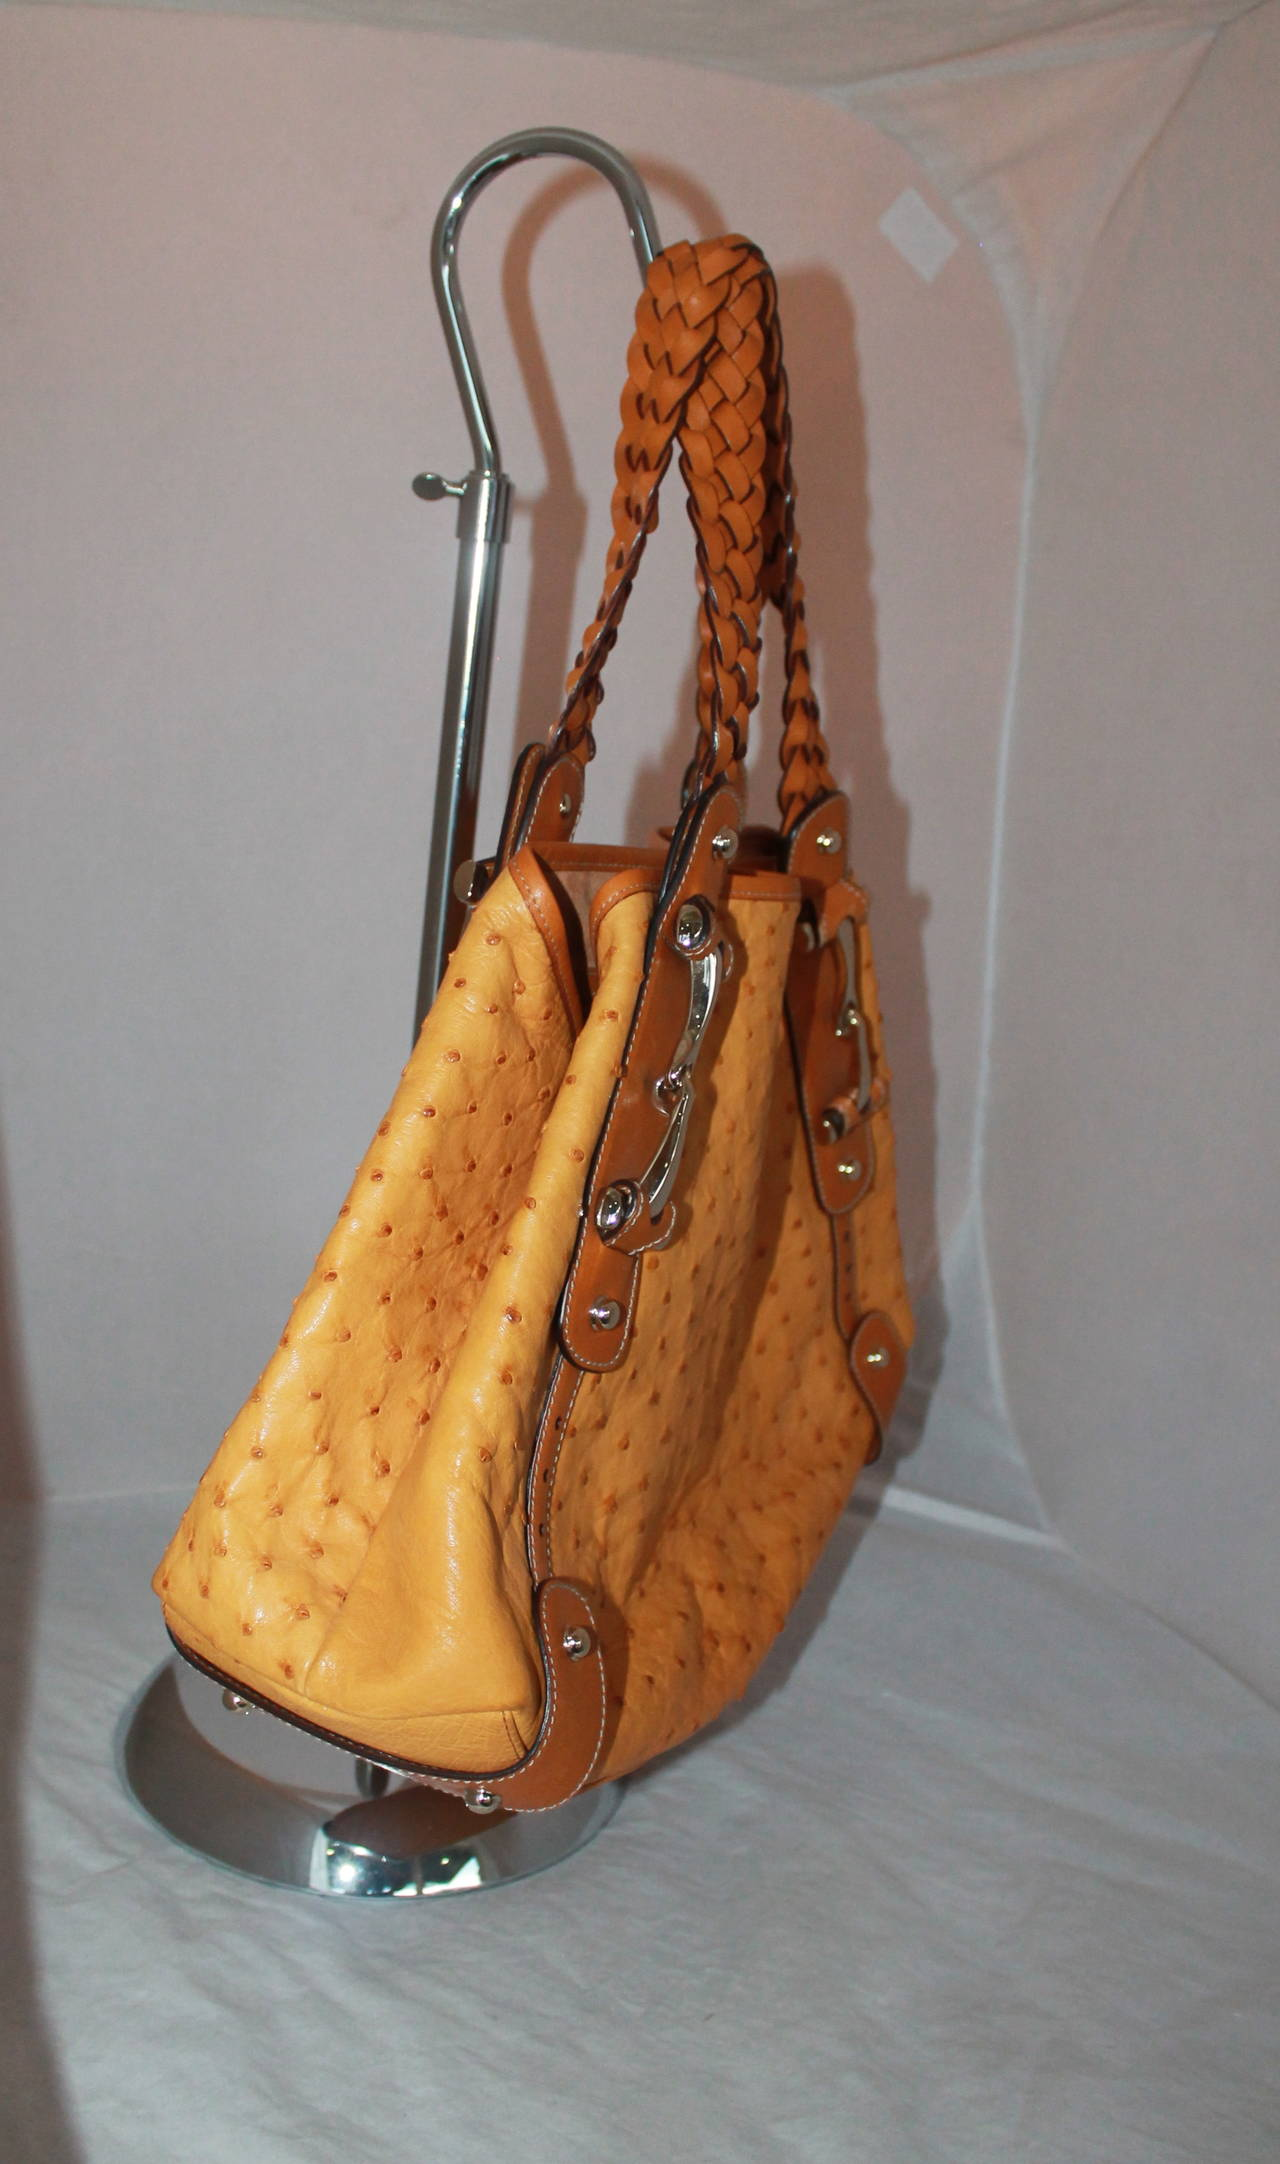 Gucci Mustard Ostrich & Luggage Braided Leather Shoulder Bag. This bag is in excellent condition with very minor wear. It is lined with suede. 